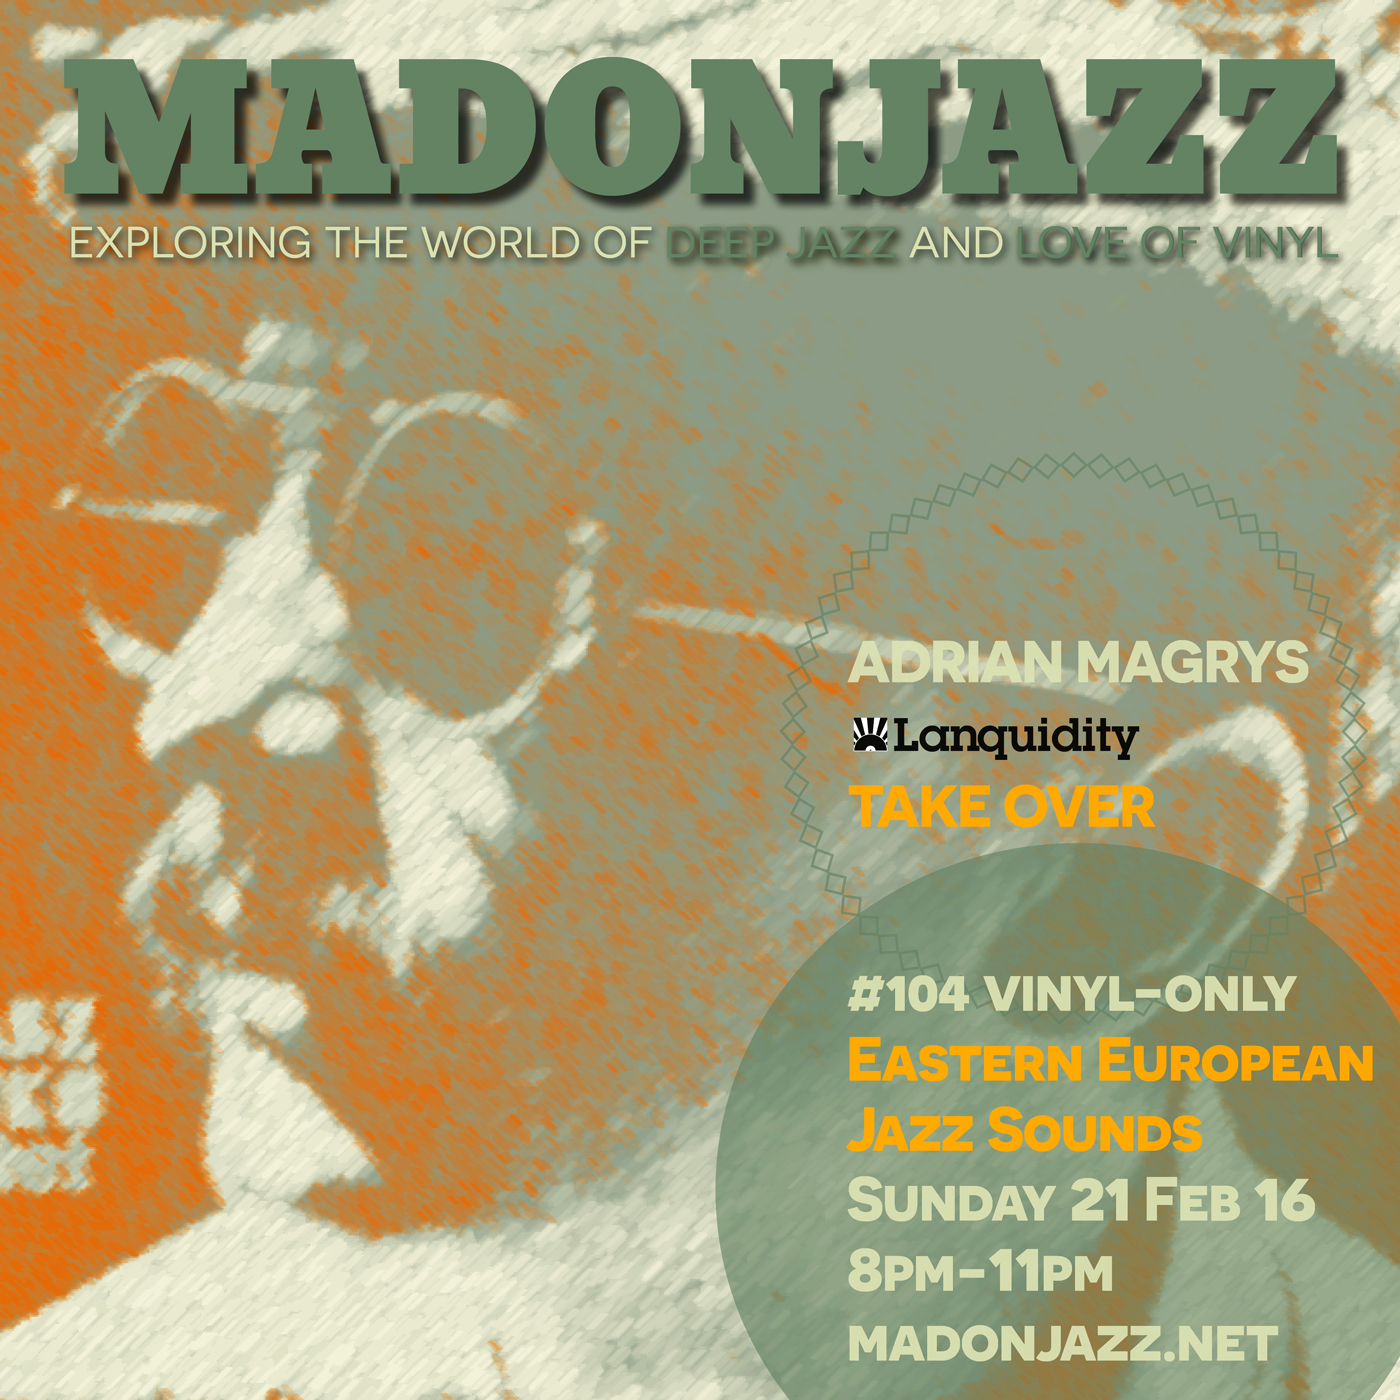 MADONJAZZ #104: Eastern European Jazz Sounds w/ Lanquidity Rec